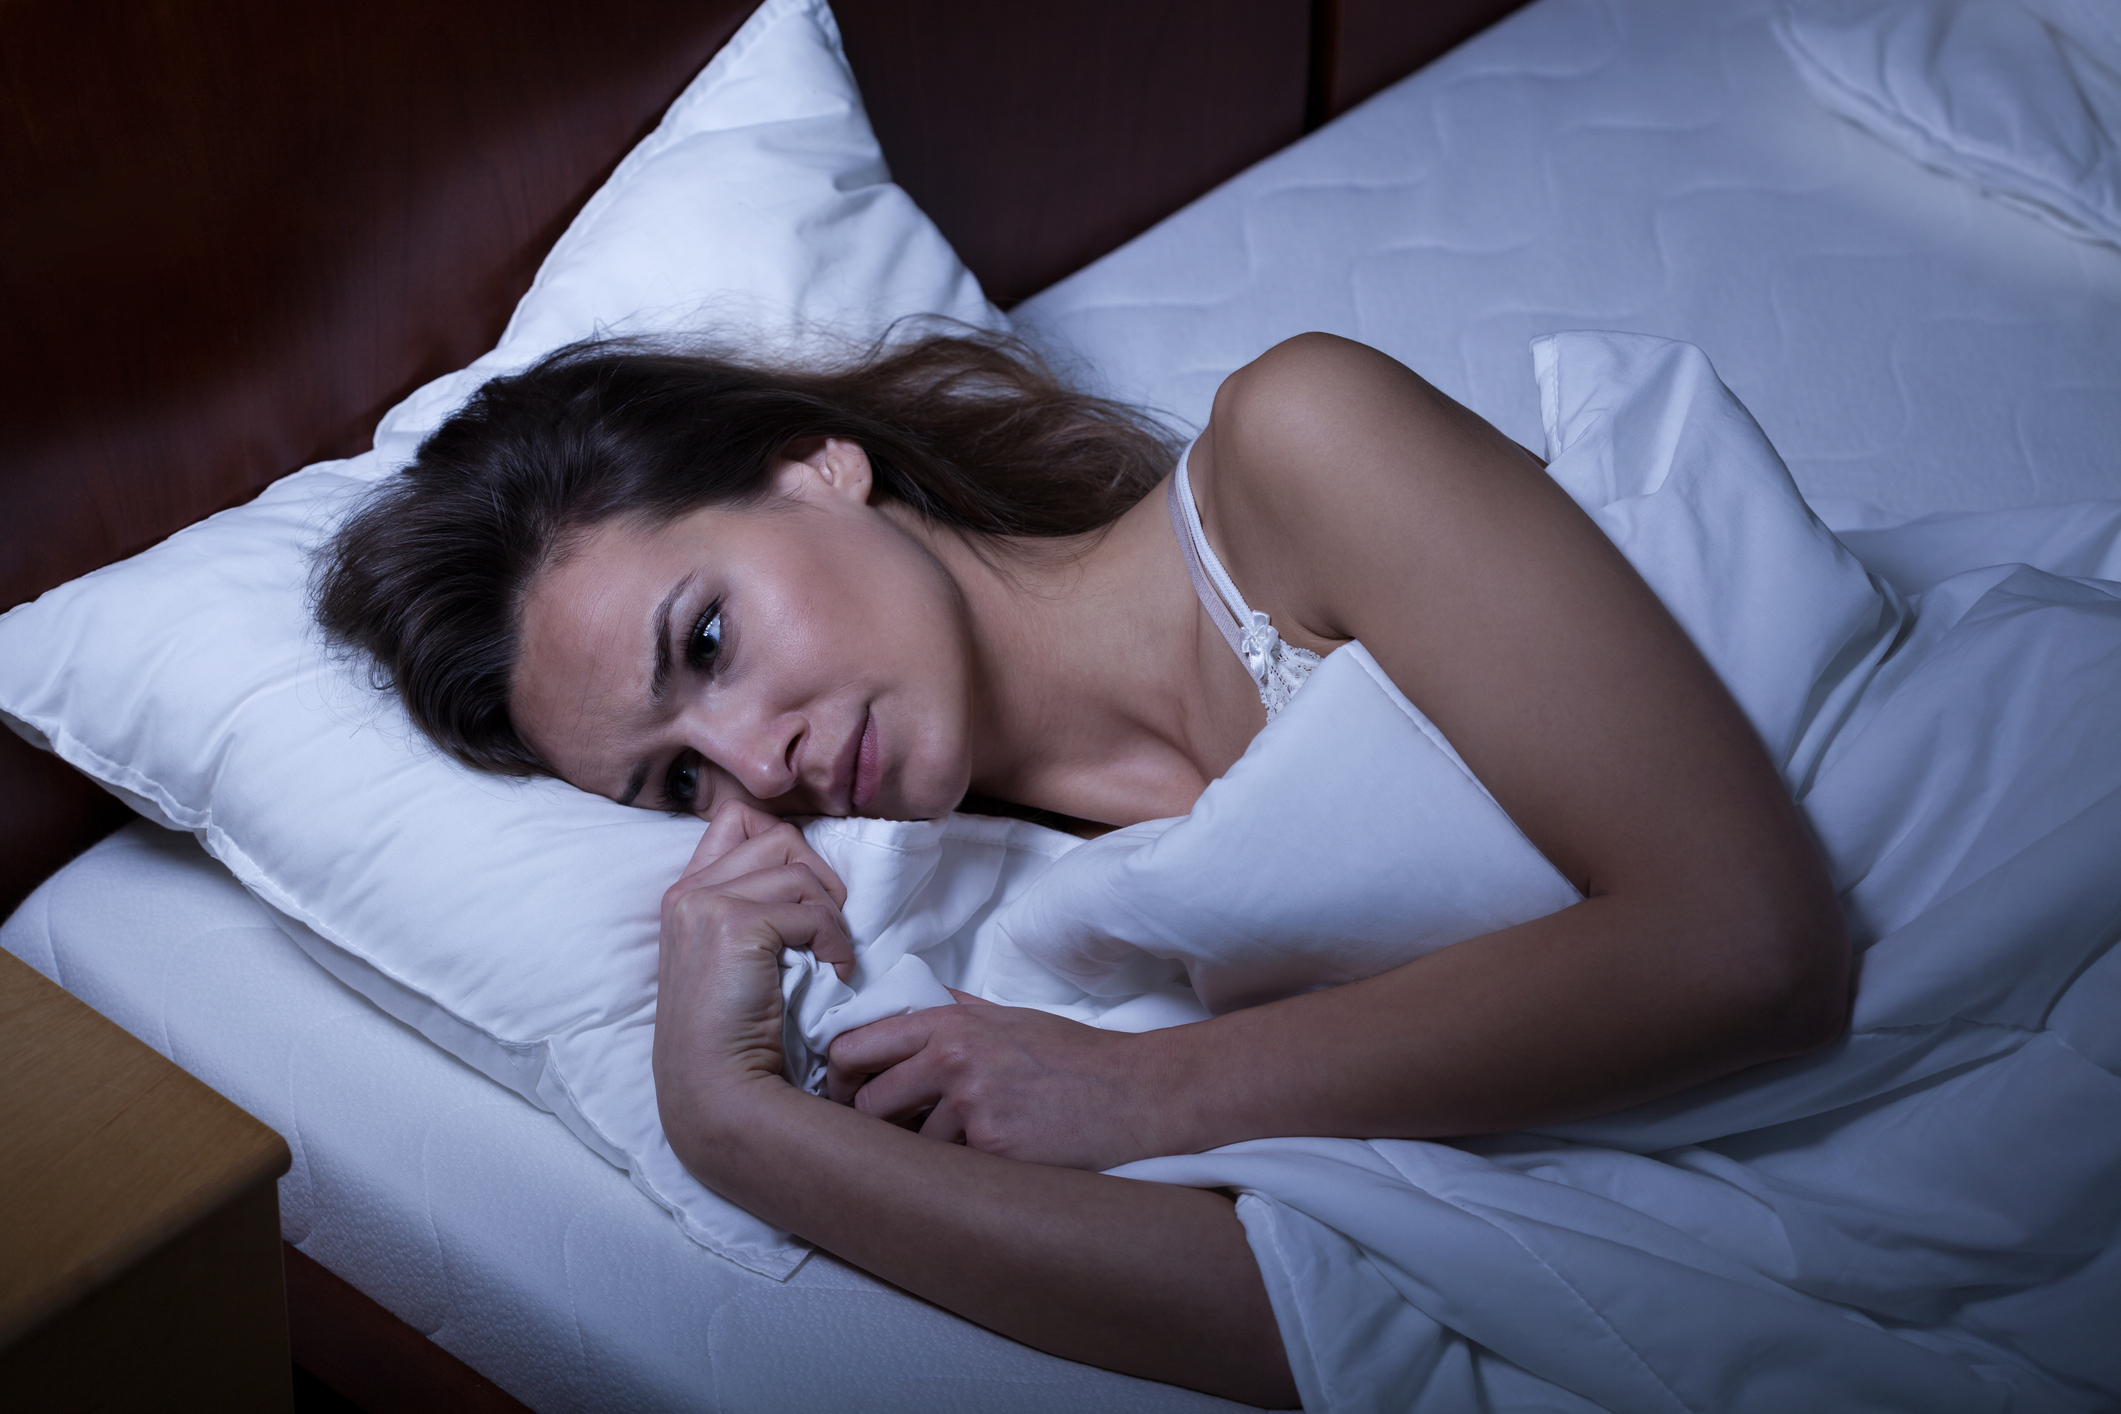 What are some sleep disorders that can cause body spasms?